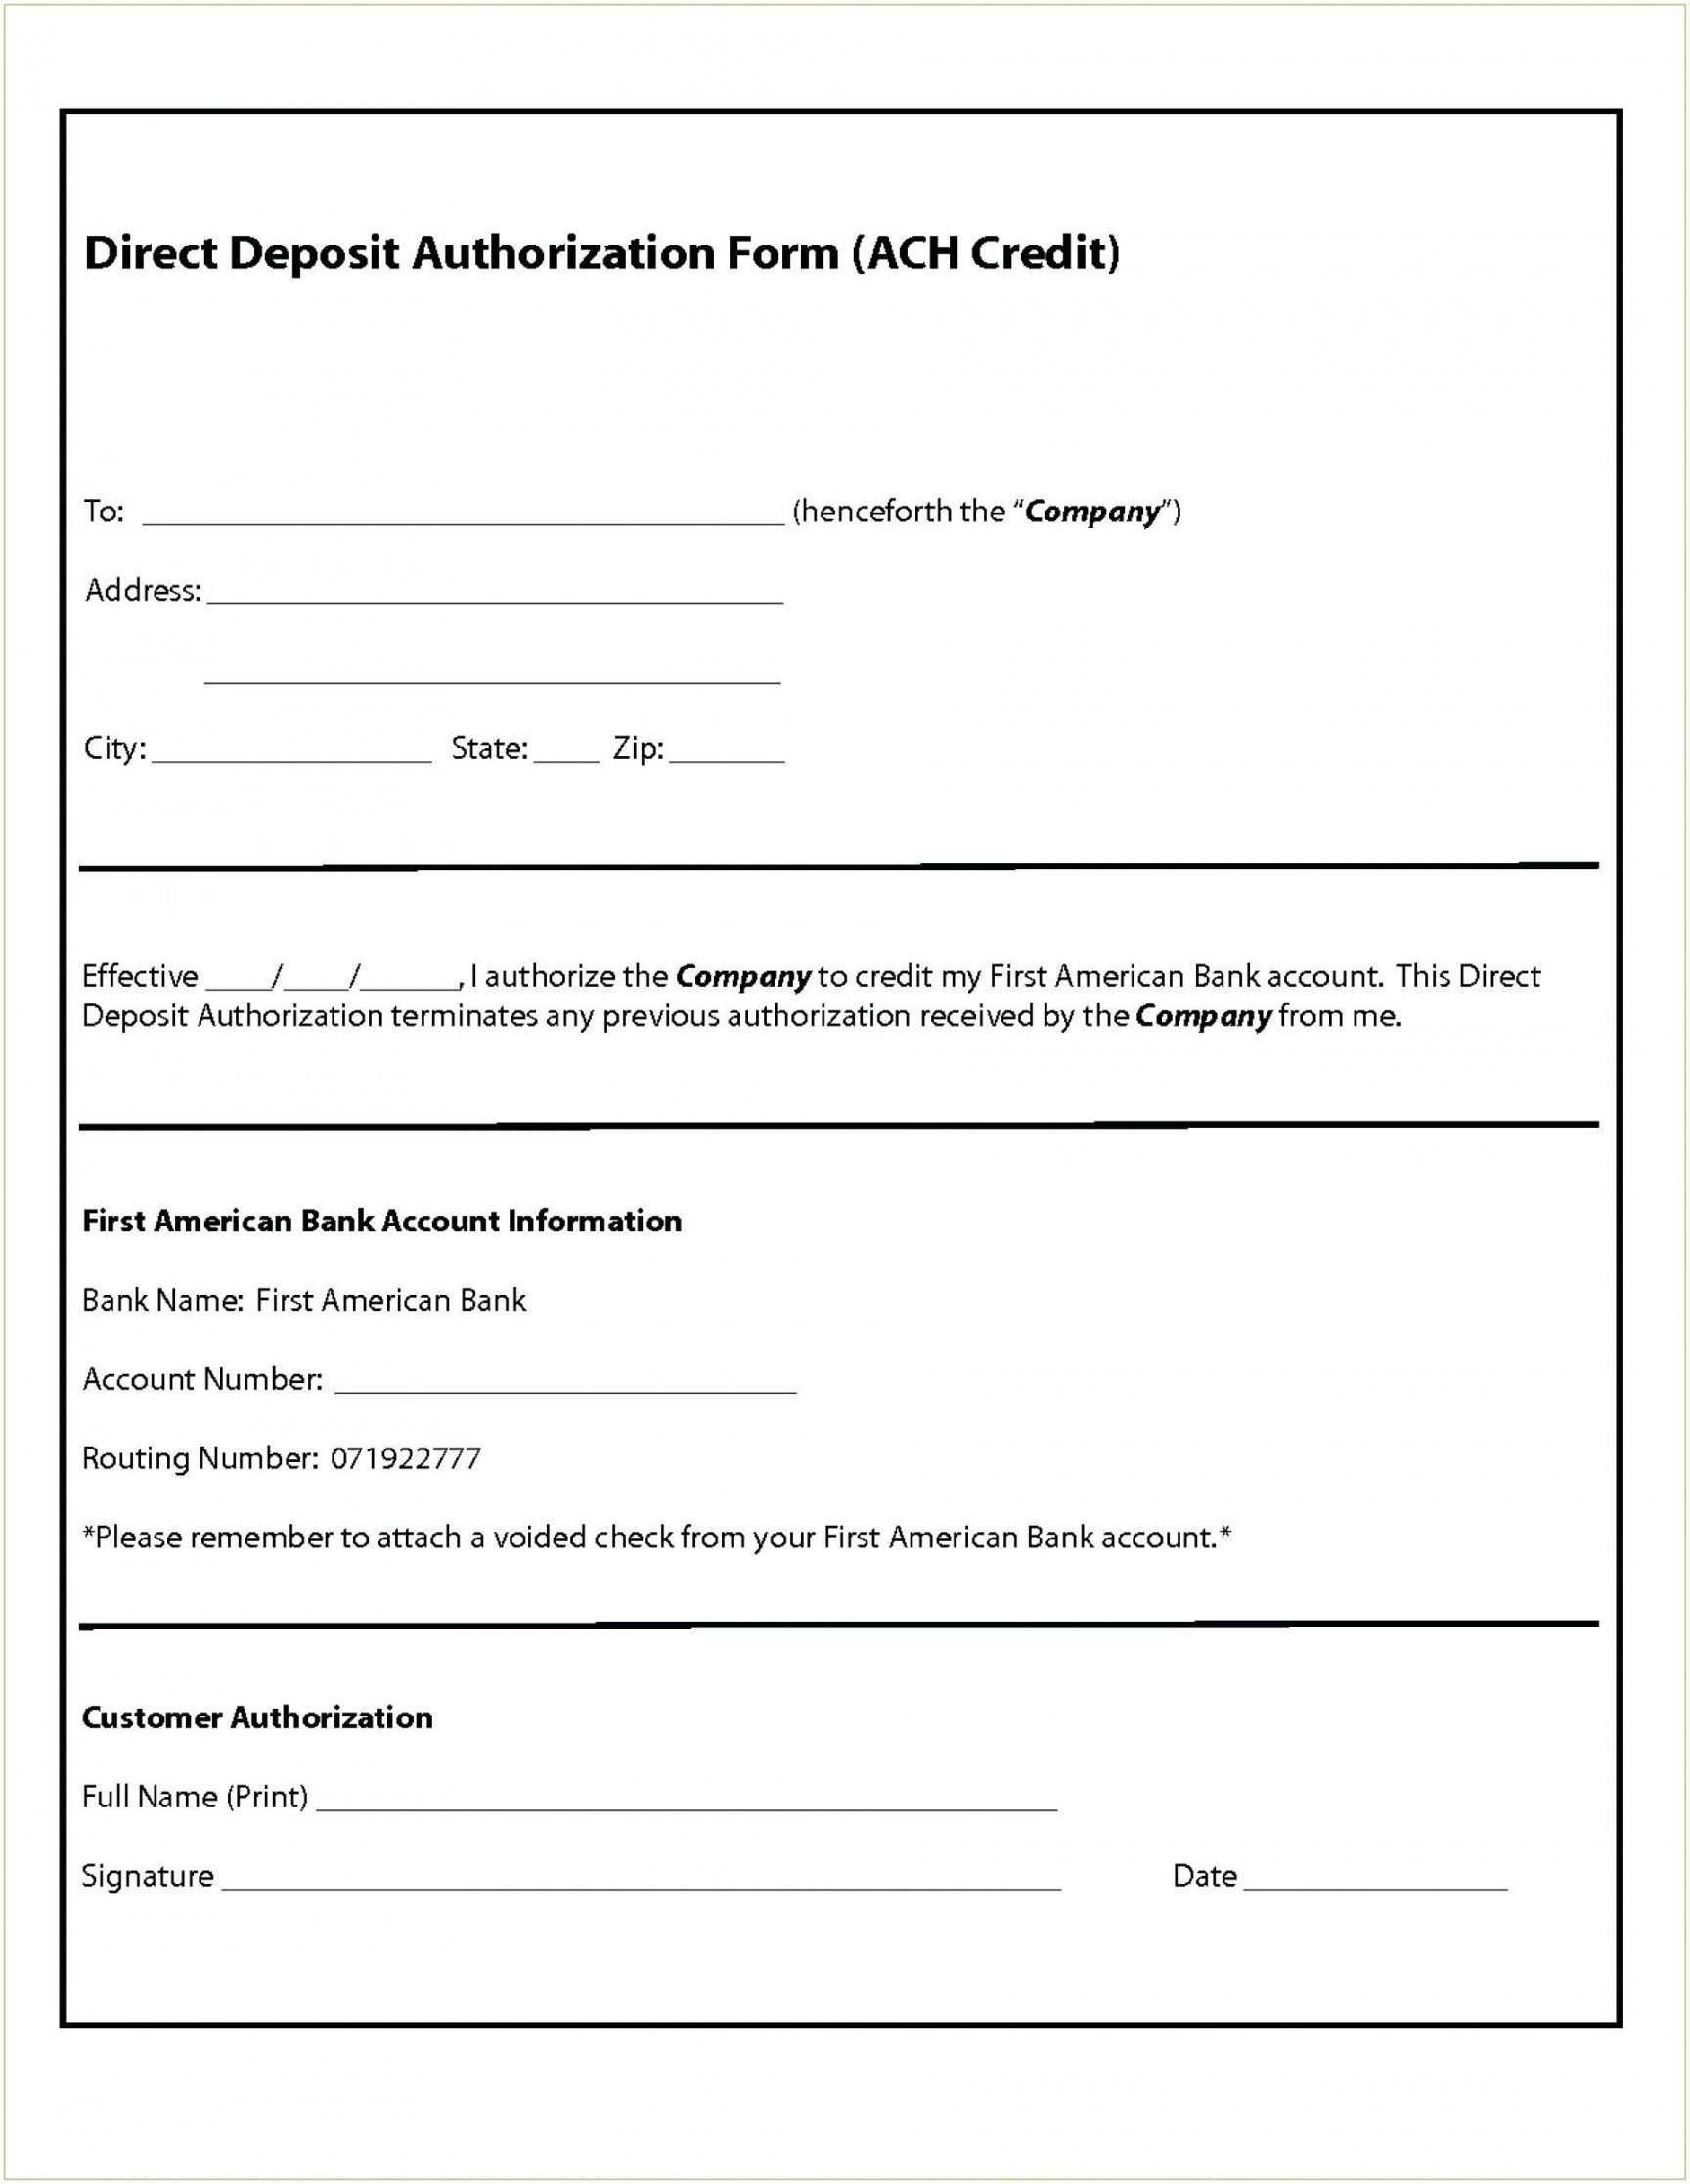 003 Fascinating Direct Deposit Agreement Authorization Form Template Sample Full